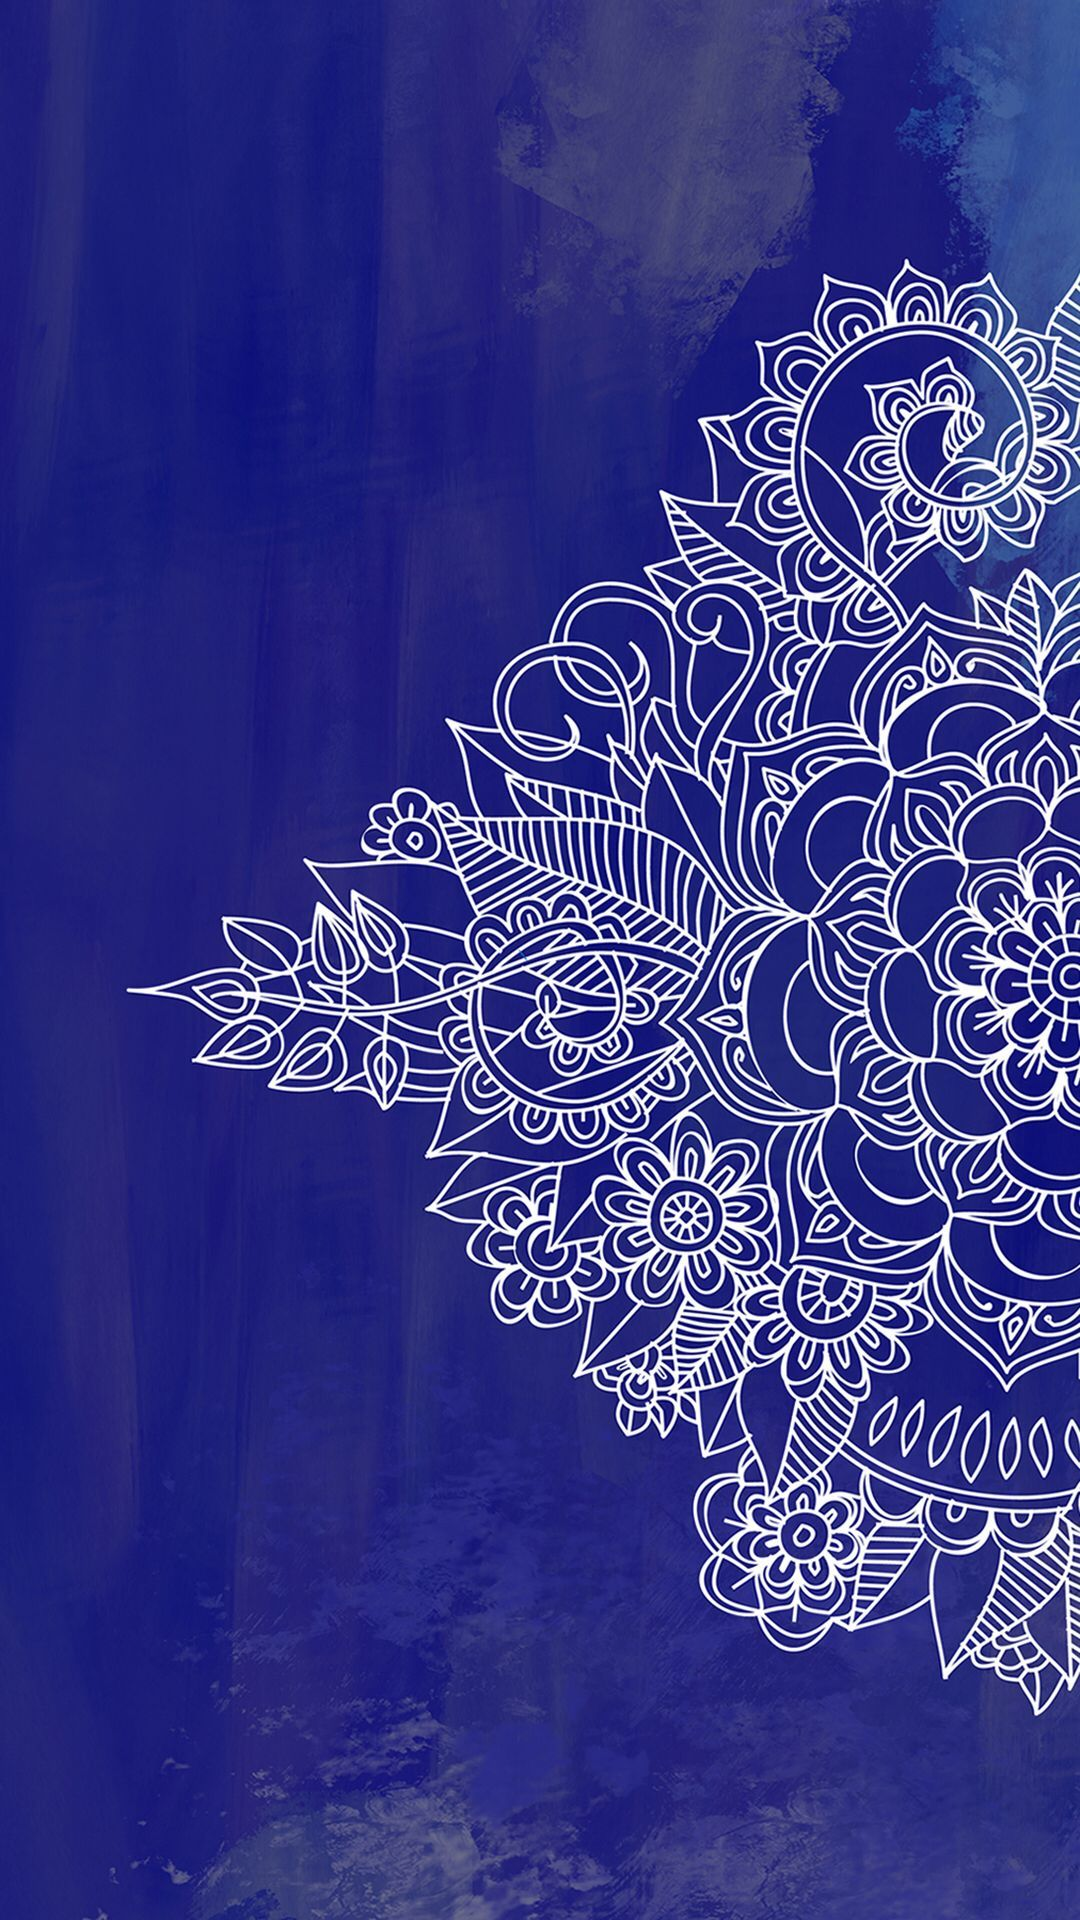 Blue Girly Wallpapers - Top Free Blue Girly Backgrounds ...